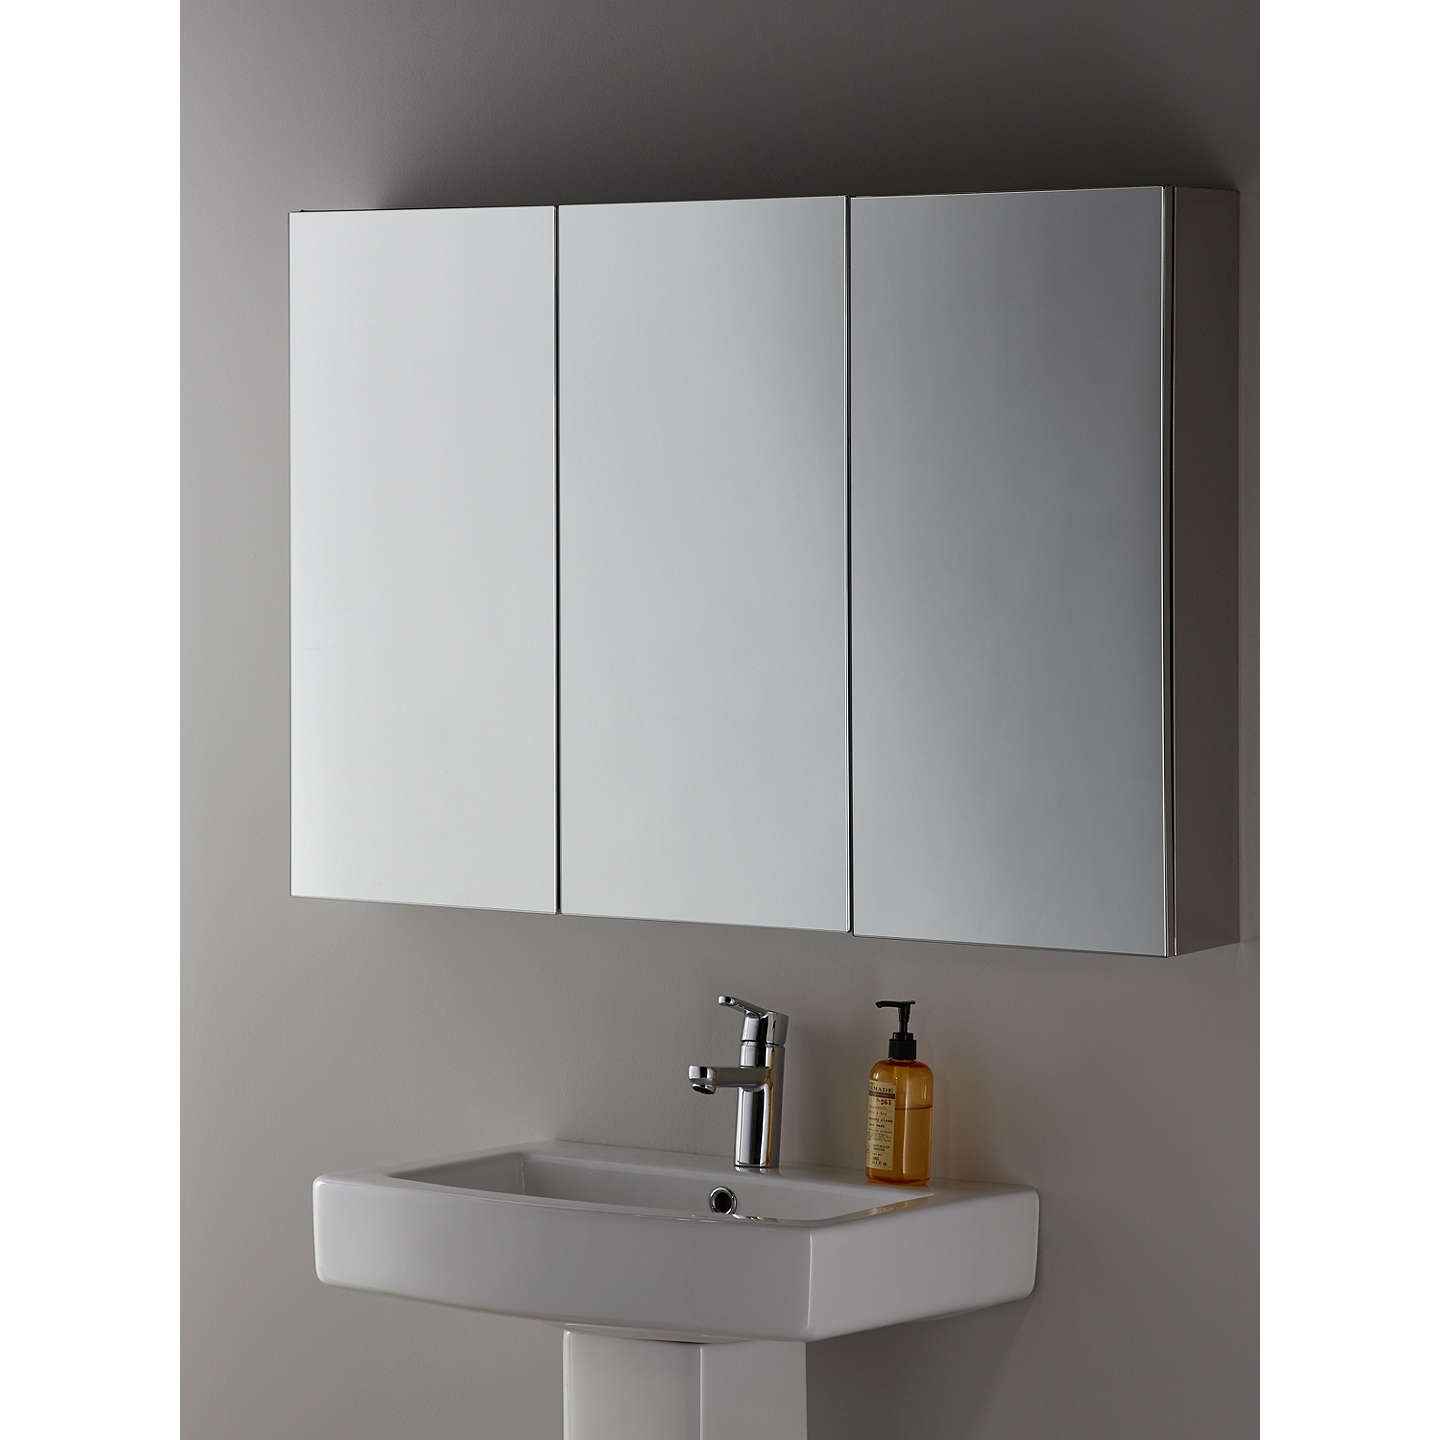 large mirrored bathroom cabinet lewis mirrored bathroom cabinet at lewis 22487